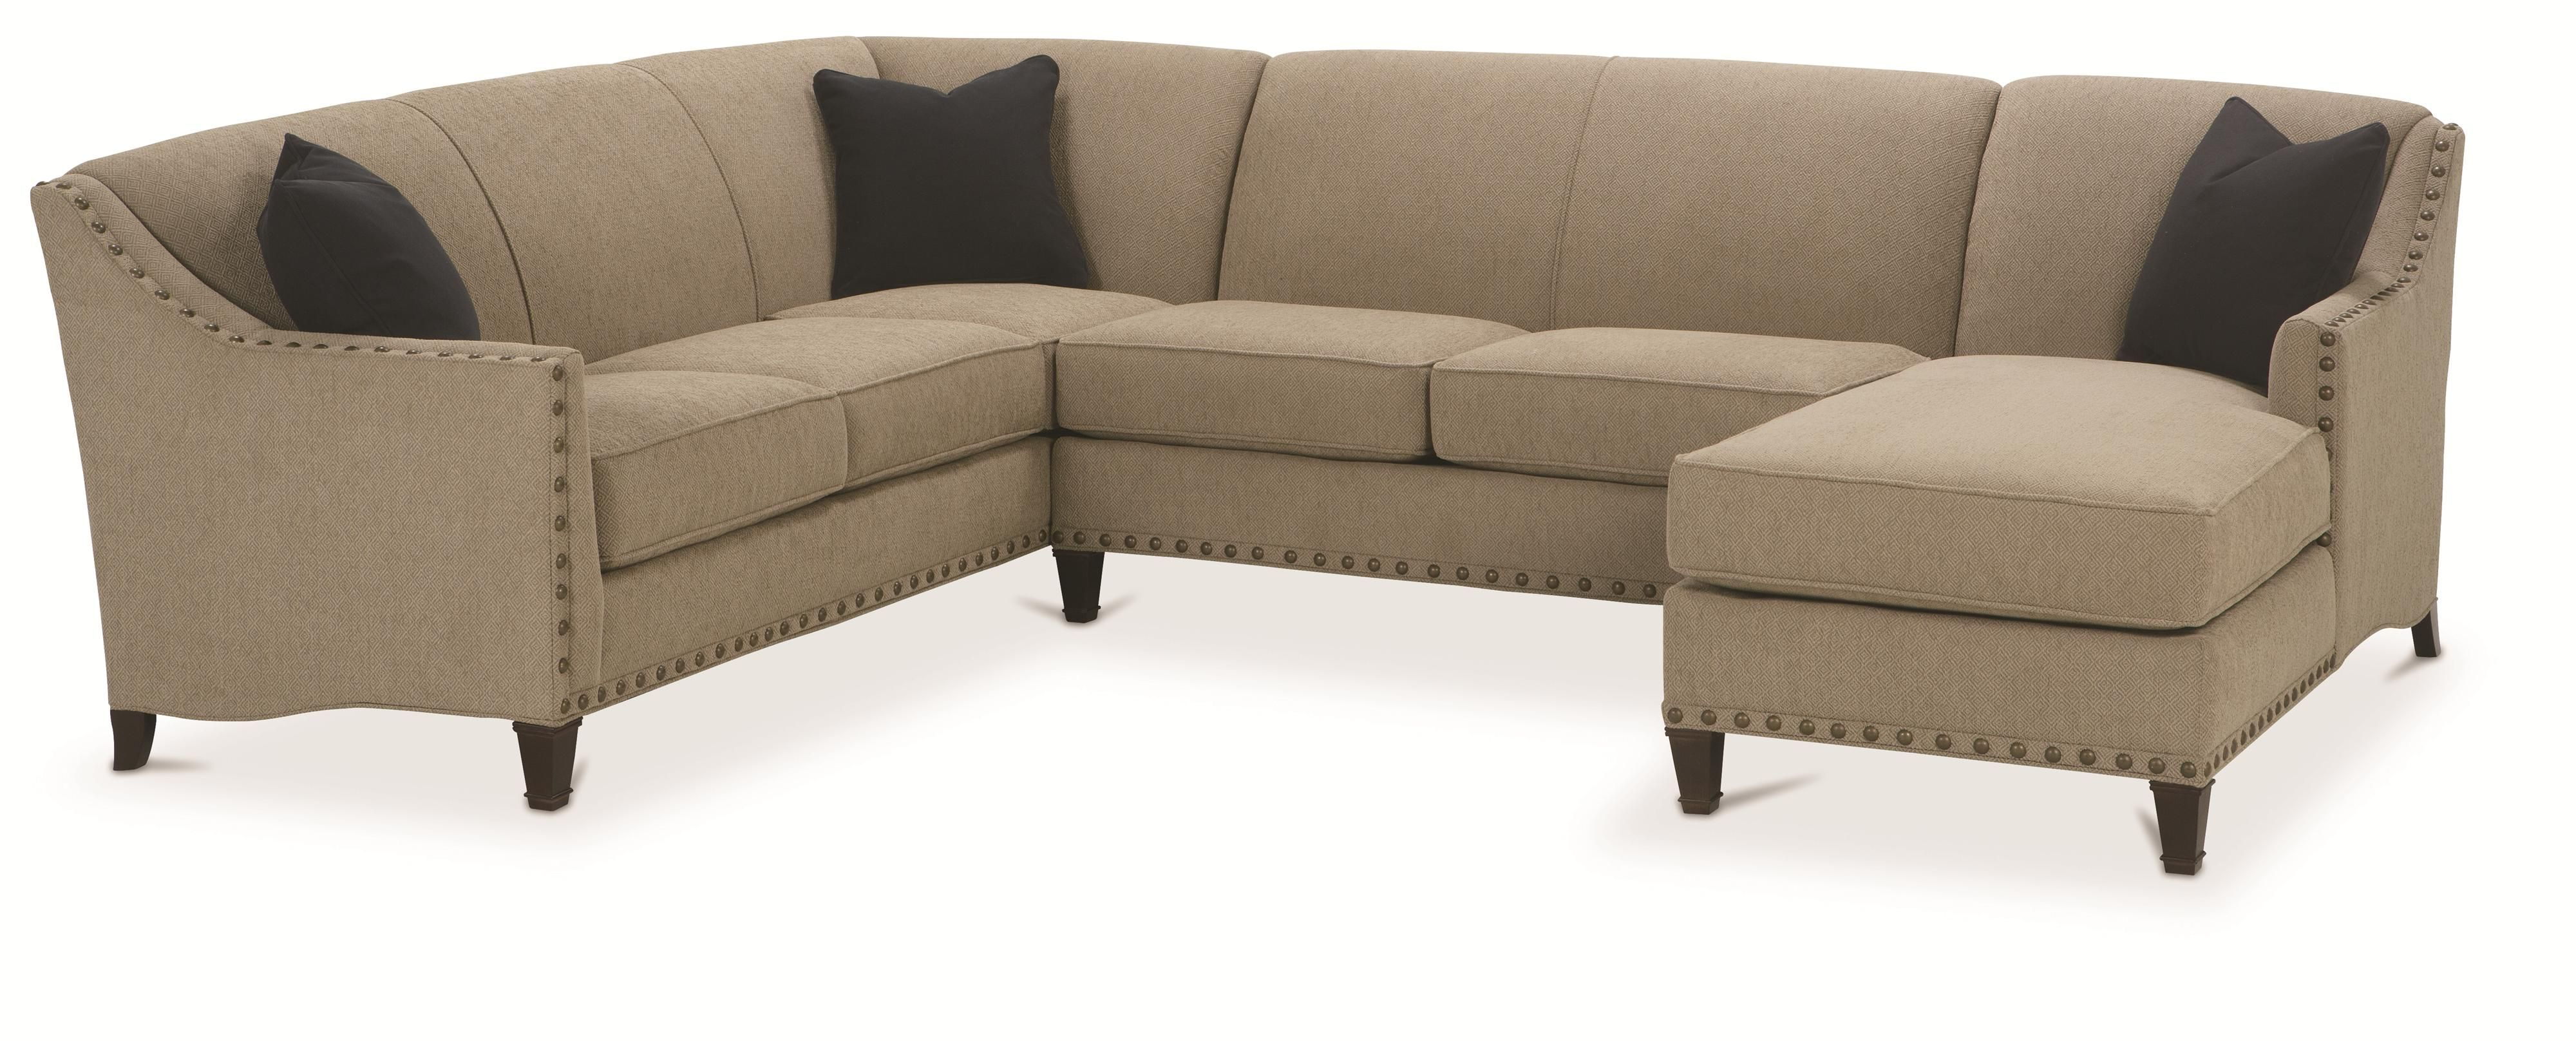 Rowe rockford traditional 3 piece sectional with chaise for Furniture 60614